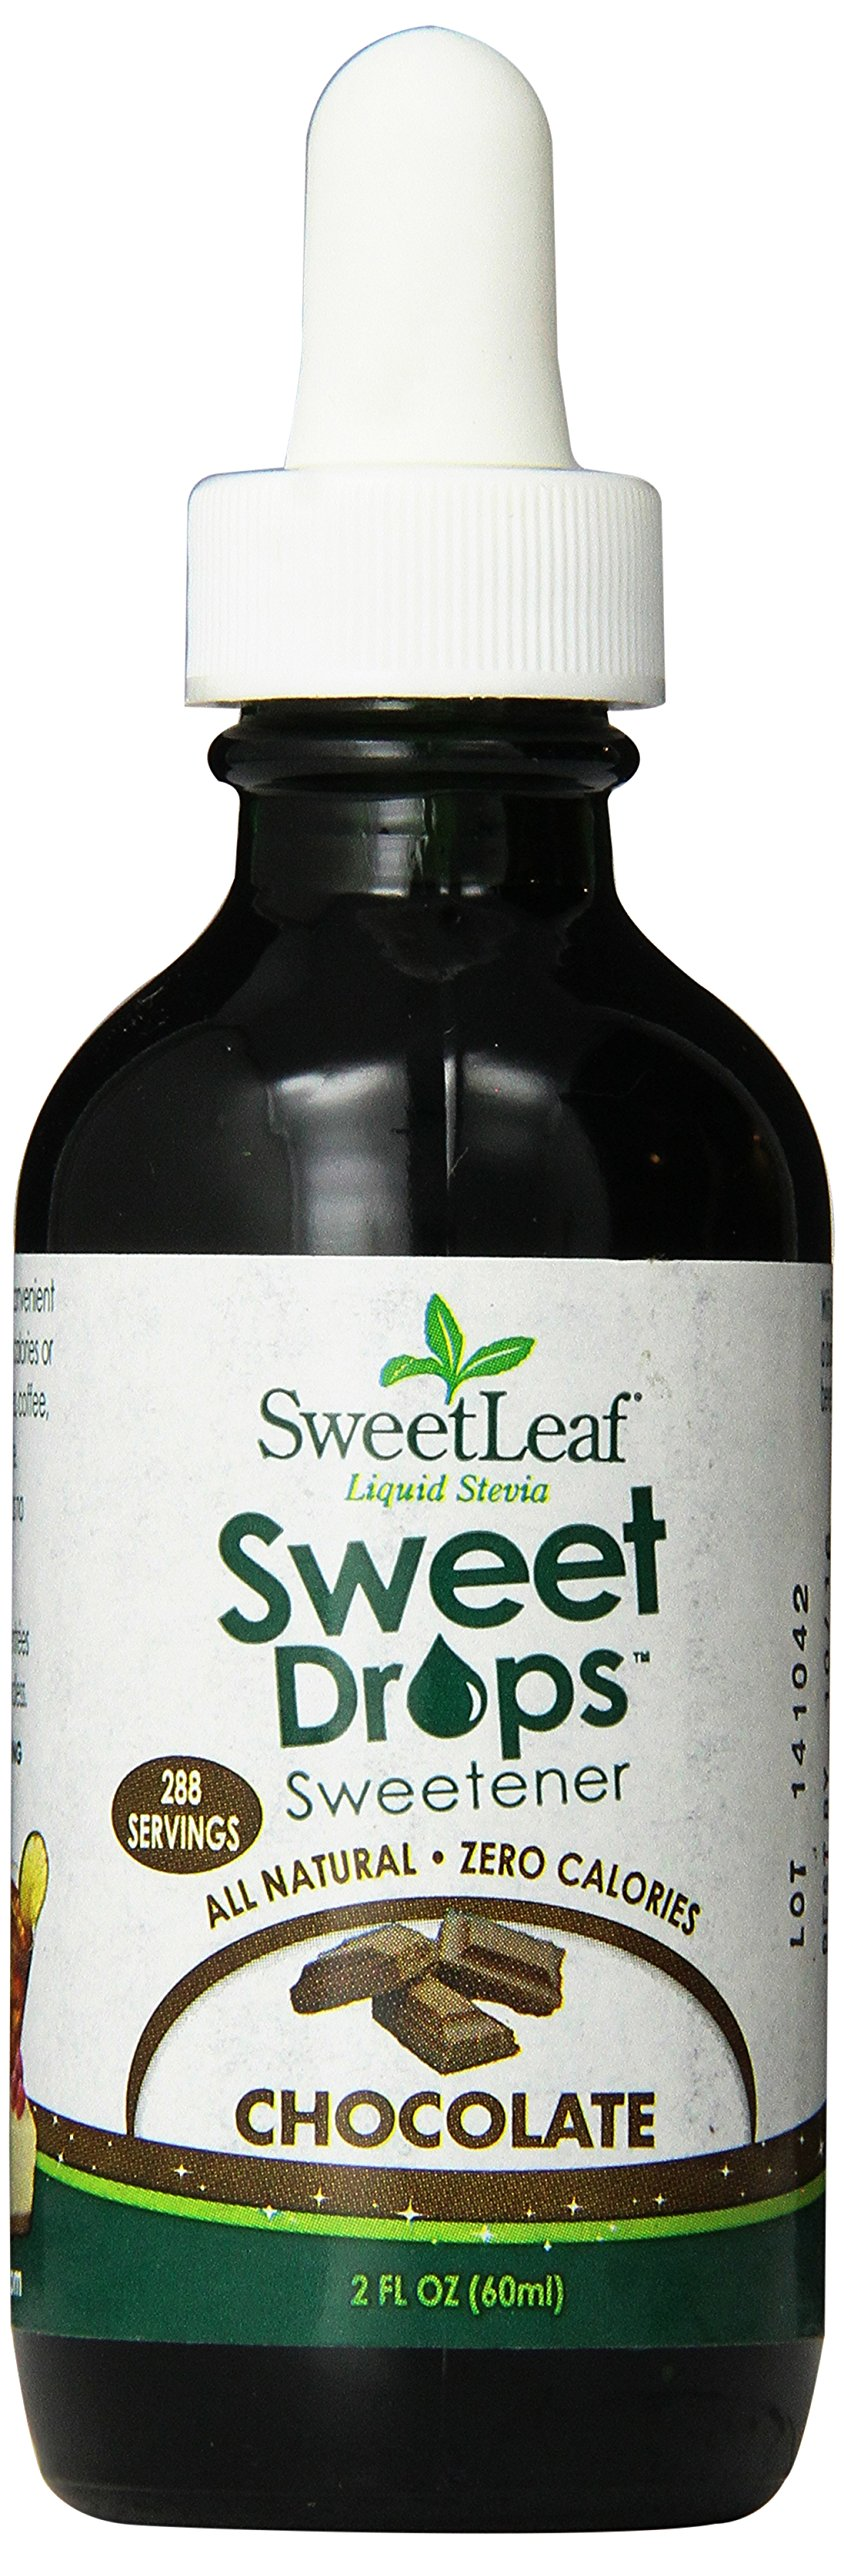 SweetLeaf Sweet Drops Liquid Stevia Sweetener, Chocolate, 2 Ounce